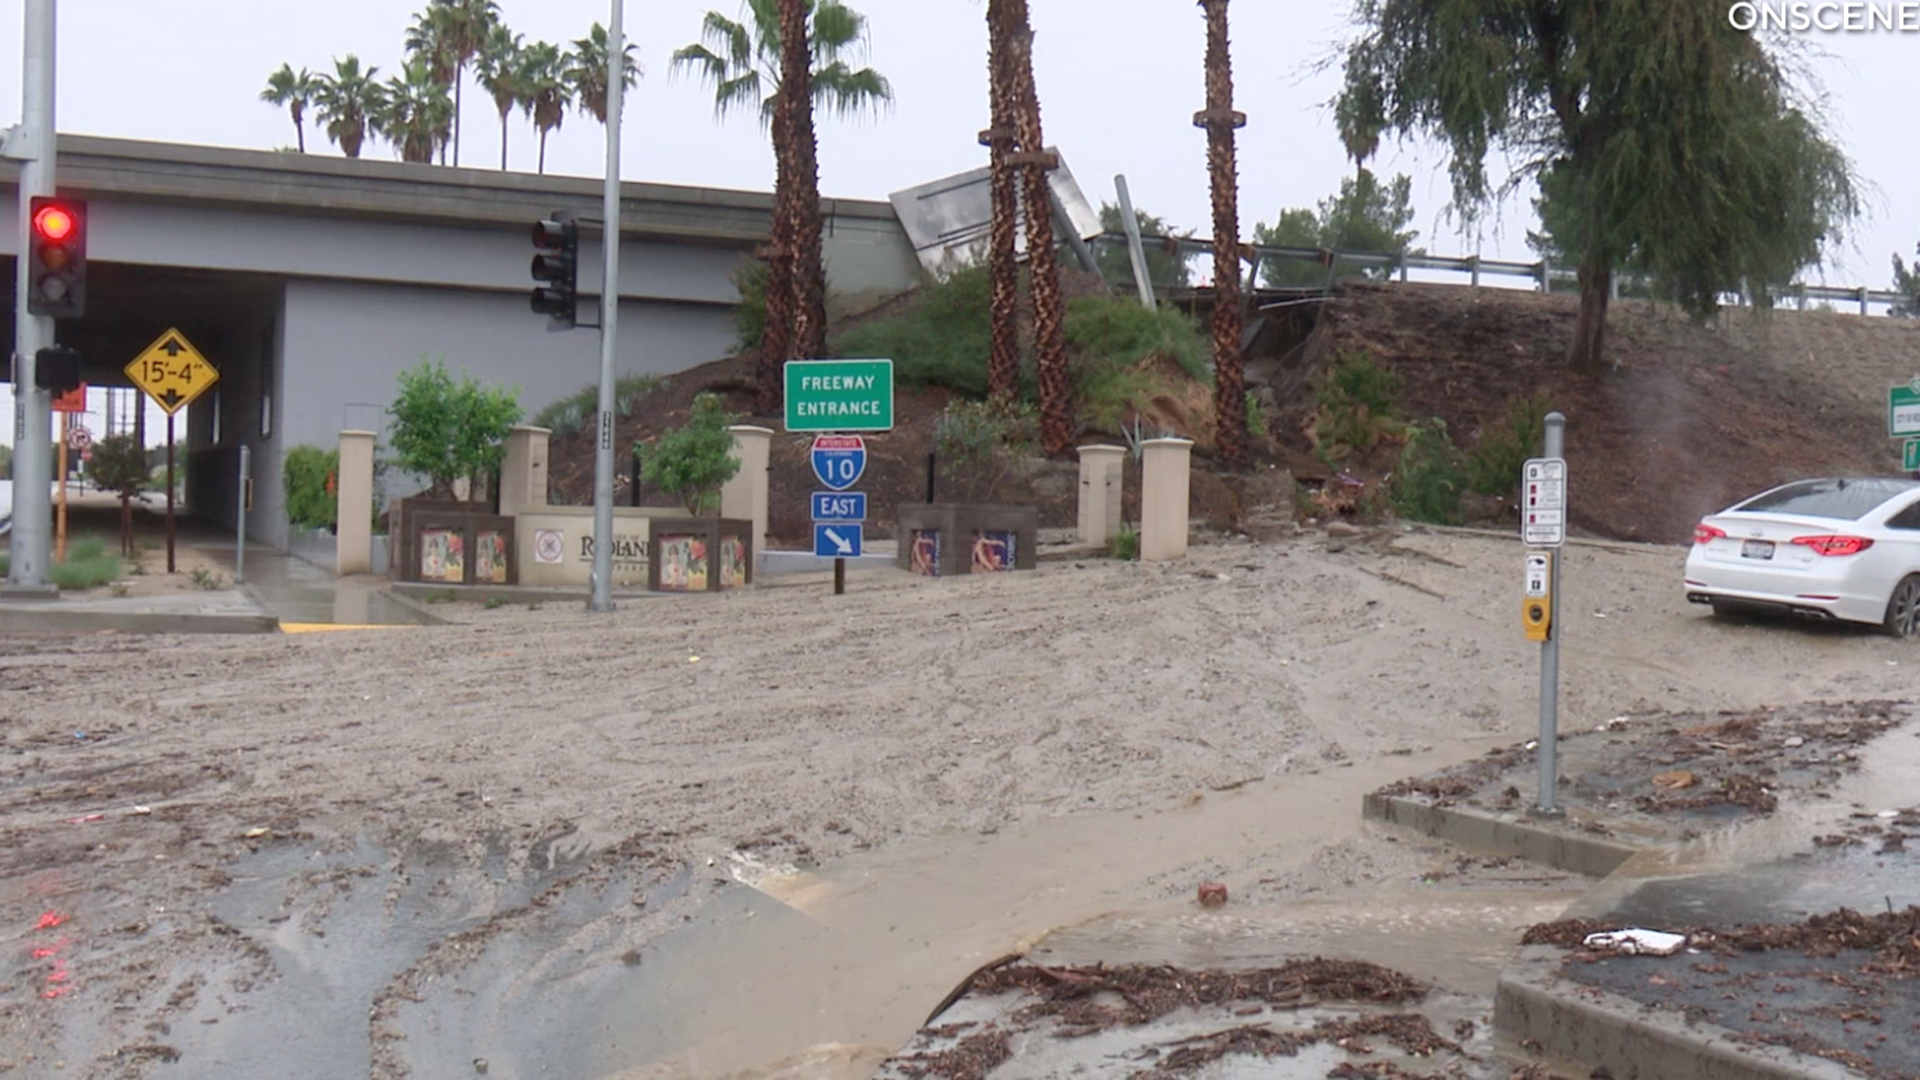 A collapsed drain caused a hole and subsequent mudslide in Redlands on Nov 28, 2019. (Credit: ONSCENETV)